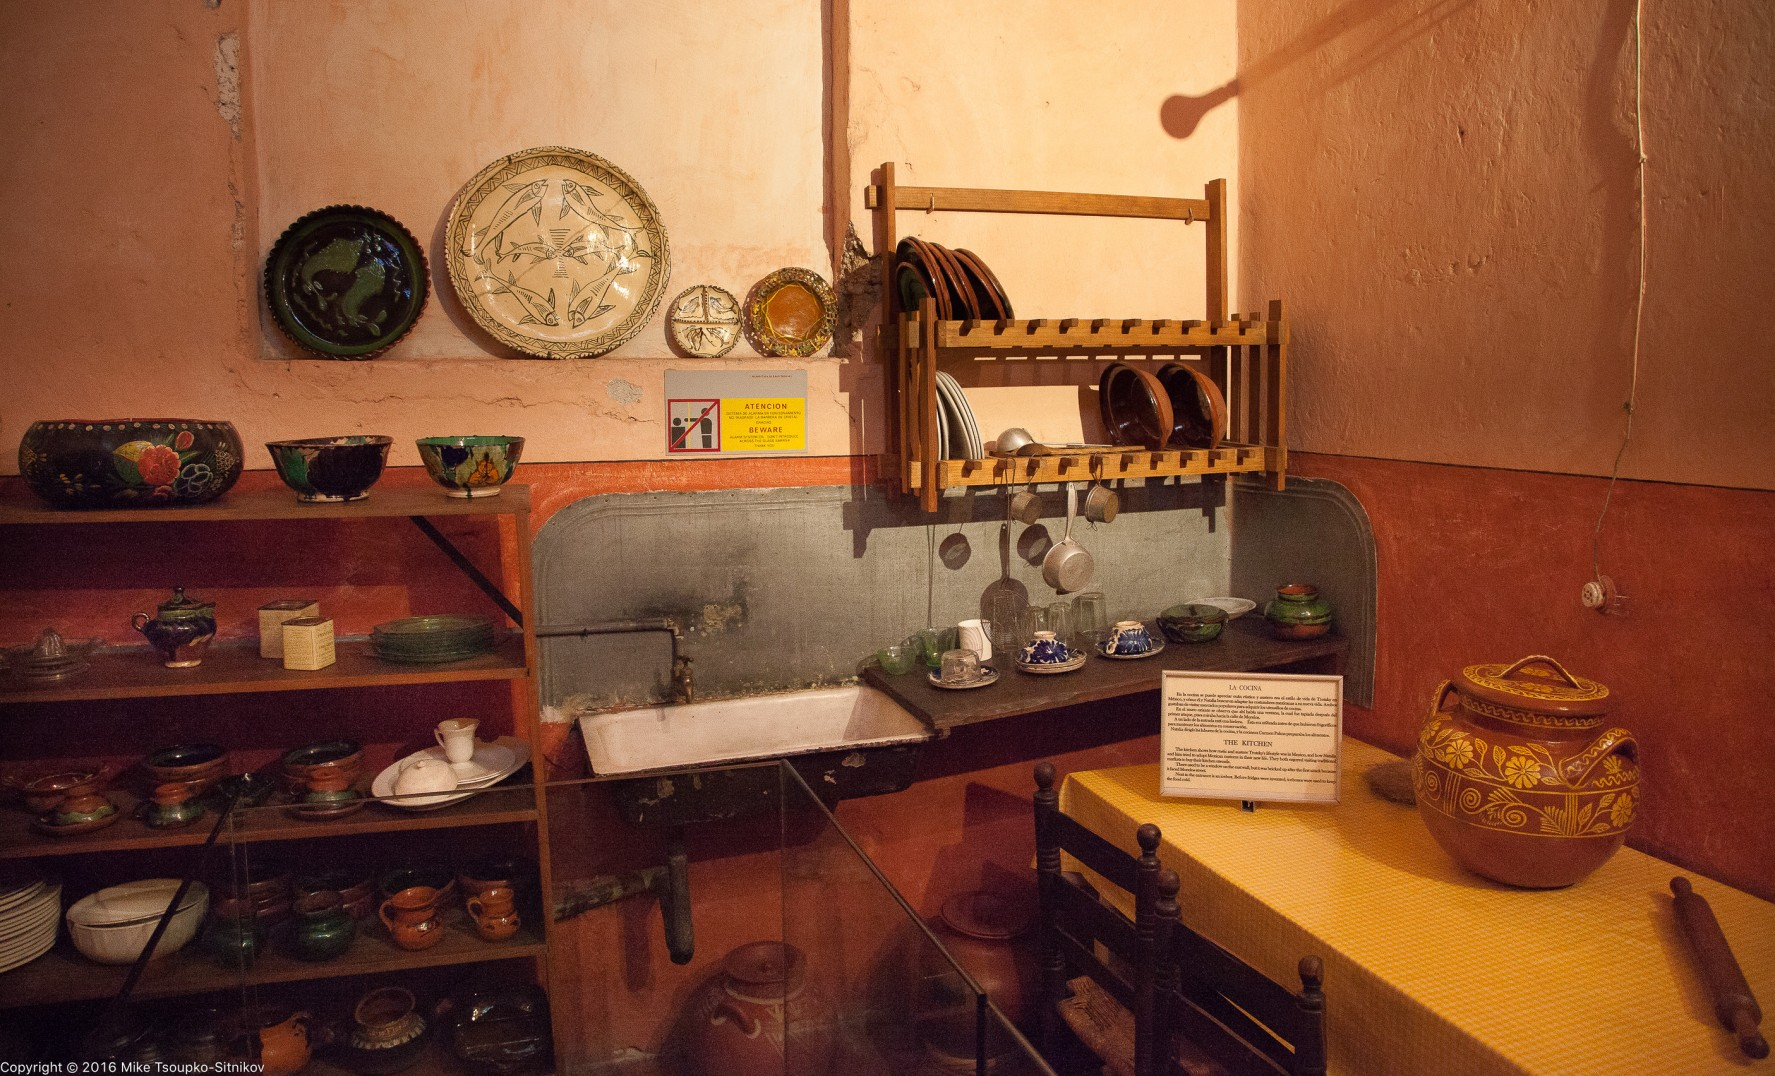 Trotsky house: the kitchen